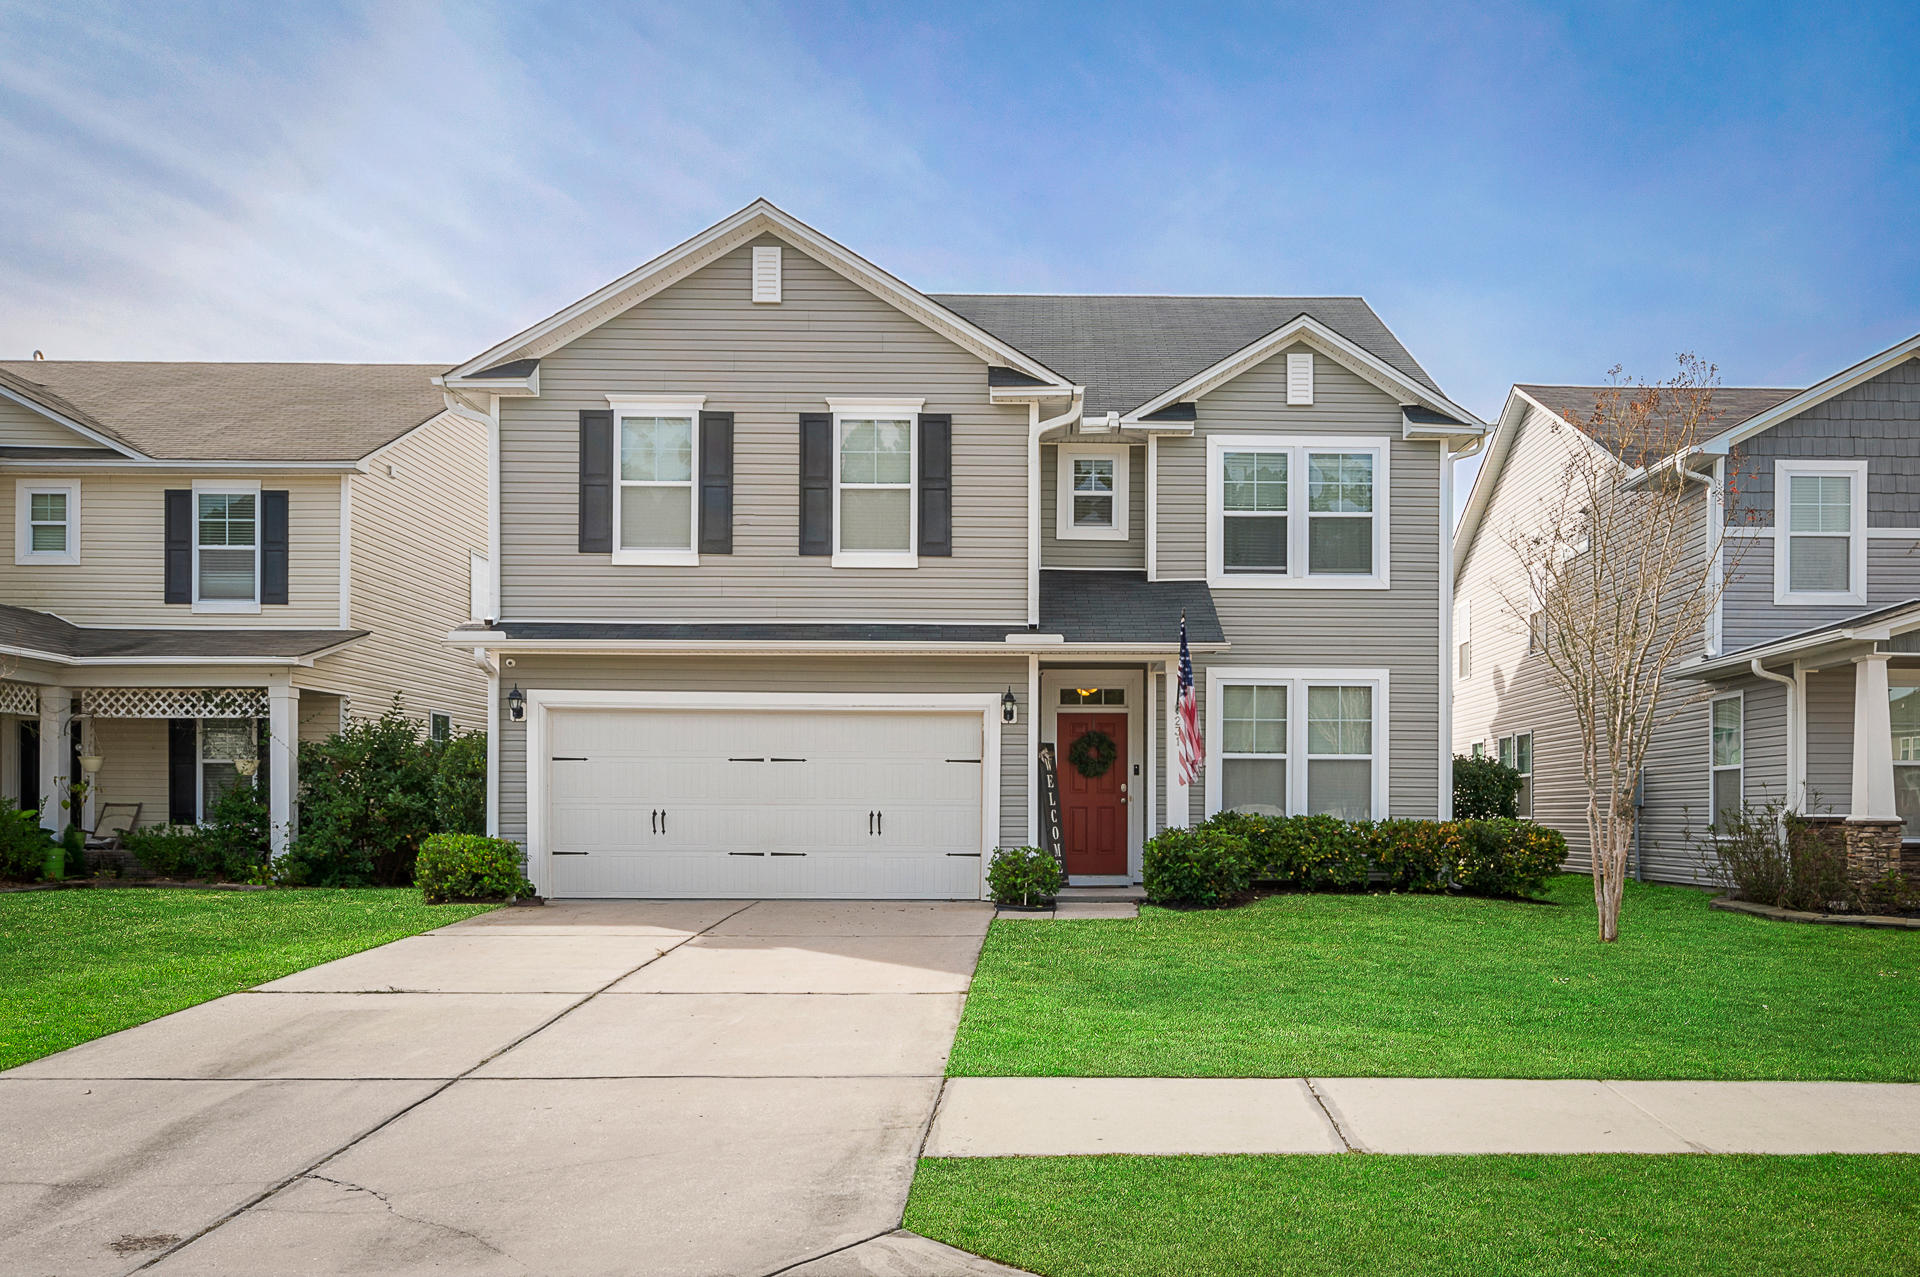 231 Laurel Crest Way Summerville, Sc 29486